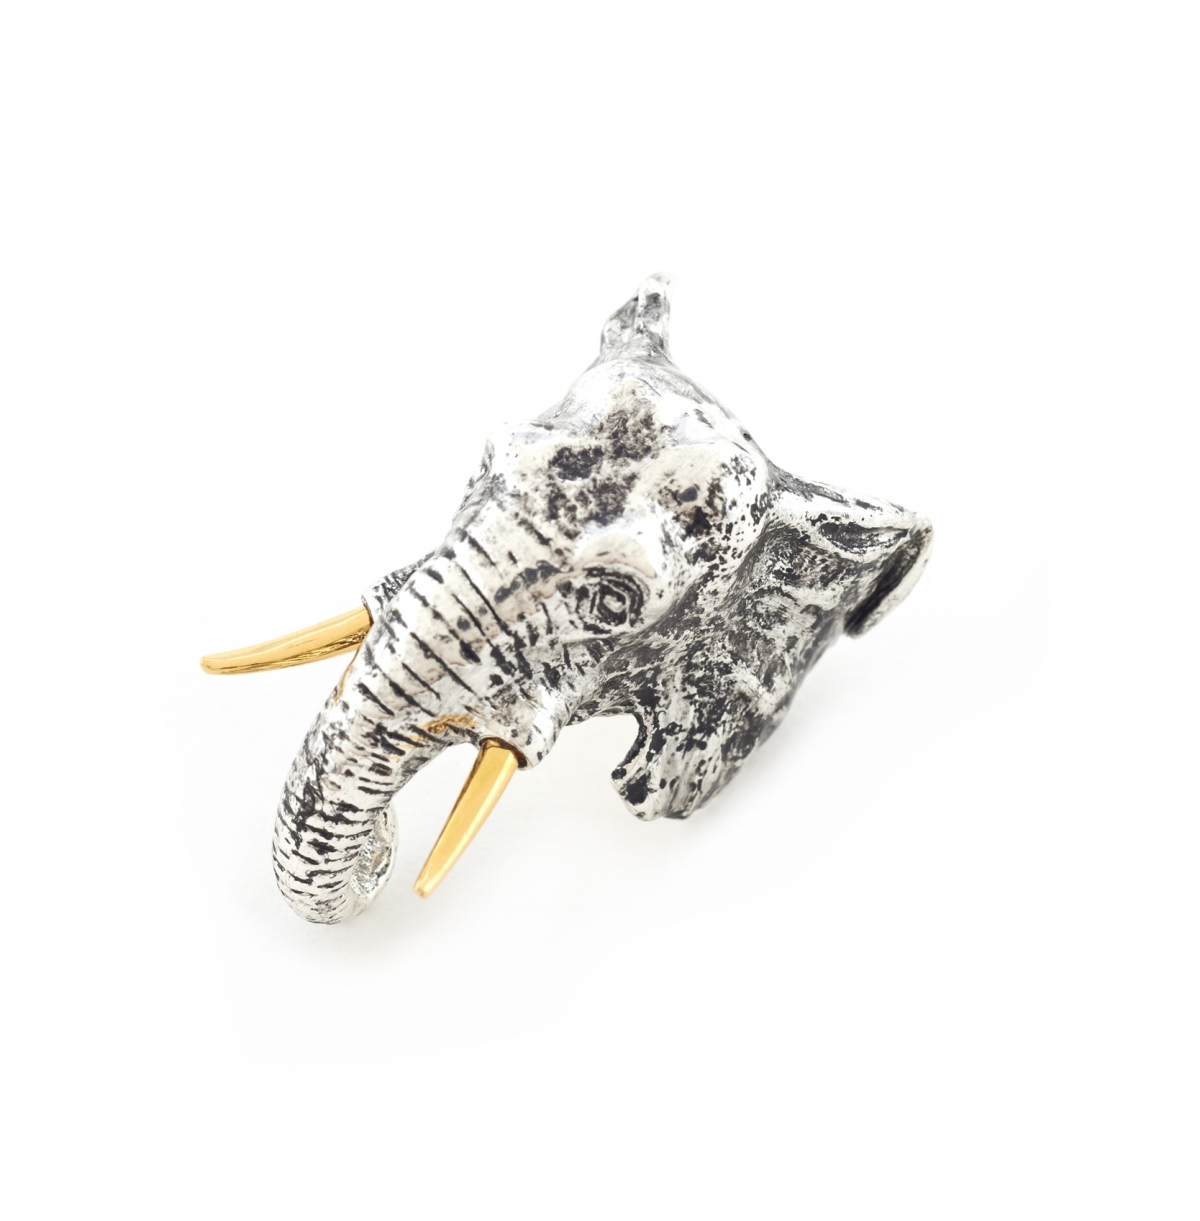 Maxi Elephant Head Ring - Medium Size Only